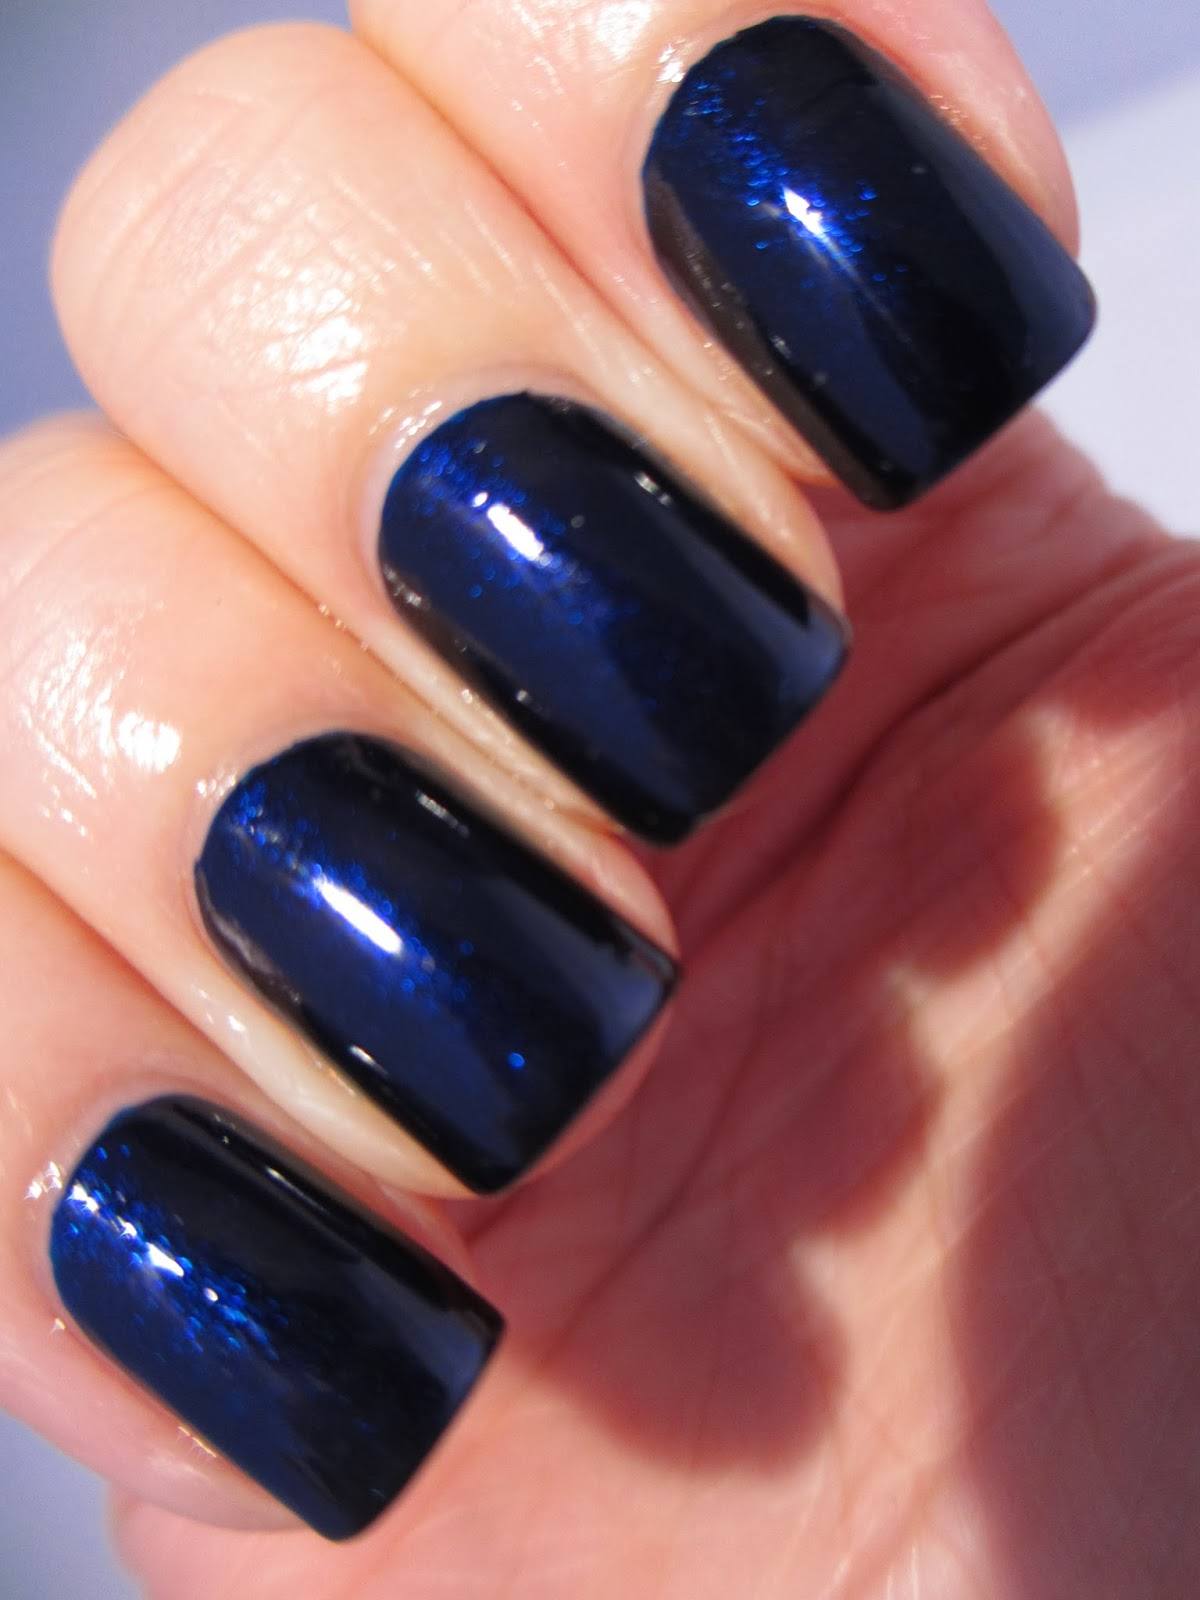 Naily perfect: Orly In The Navy swatch